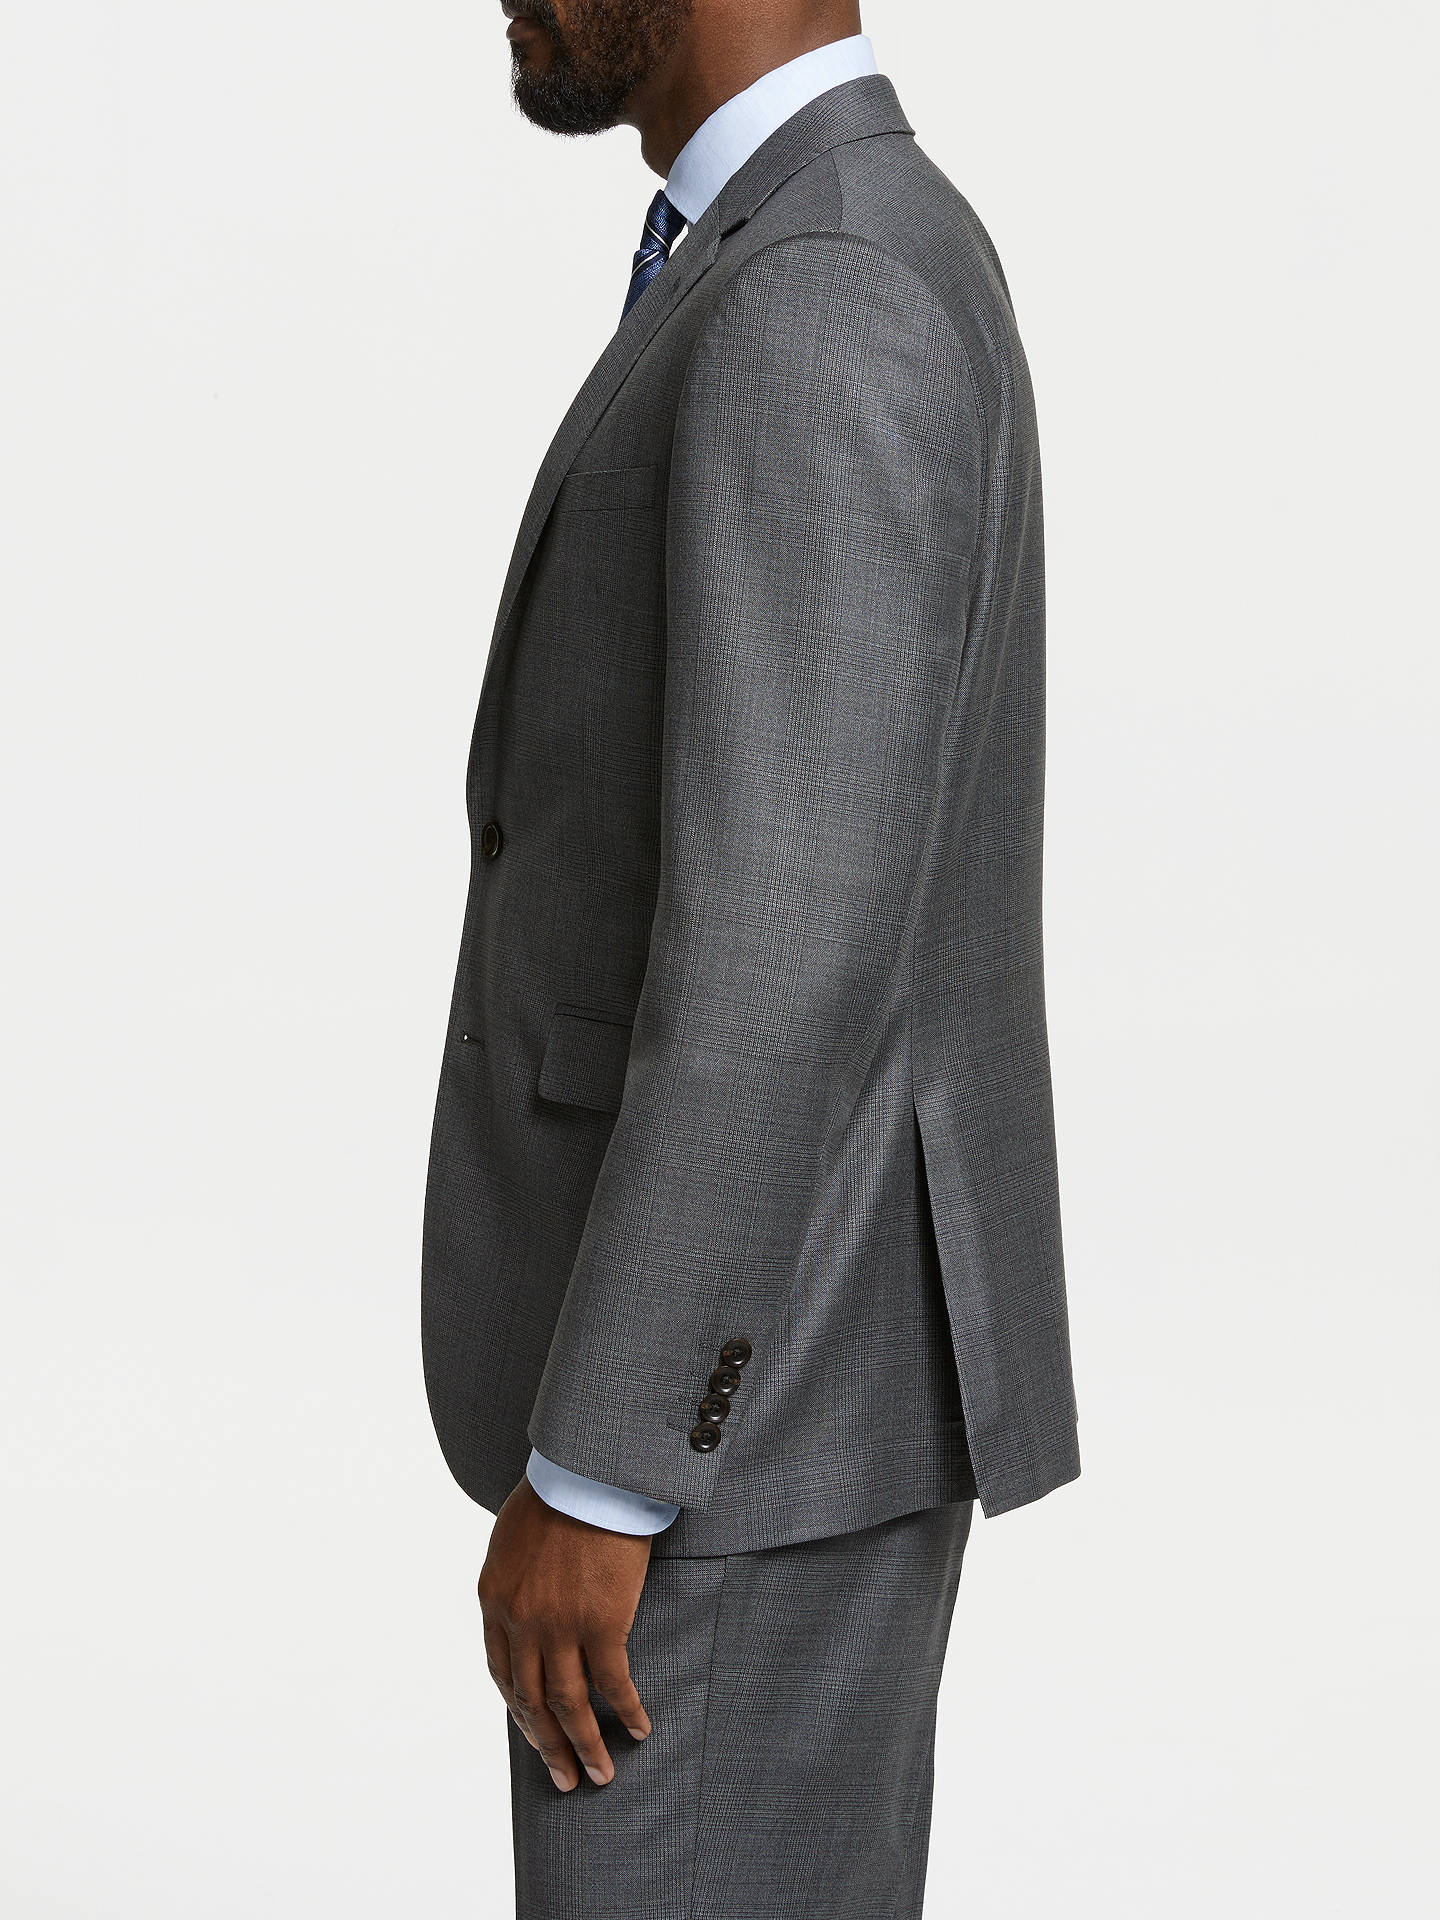 21d492938f John Lewis & Partners Zegna Wool Tailored Fit Check Suit Jacket, Grey